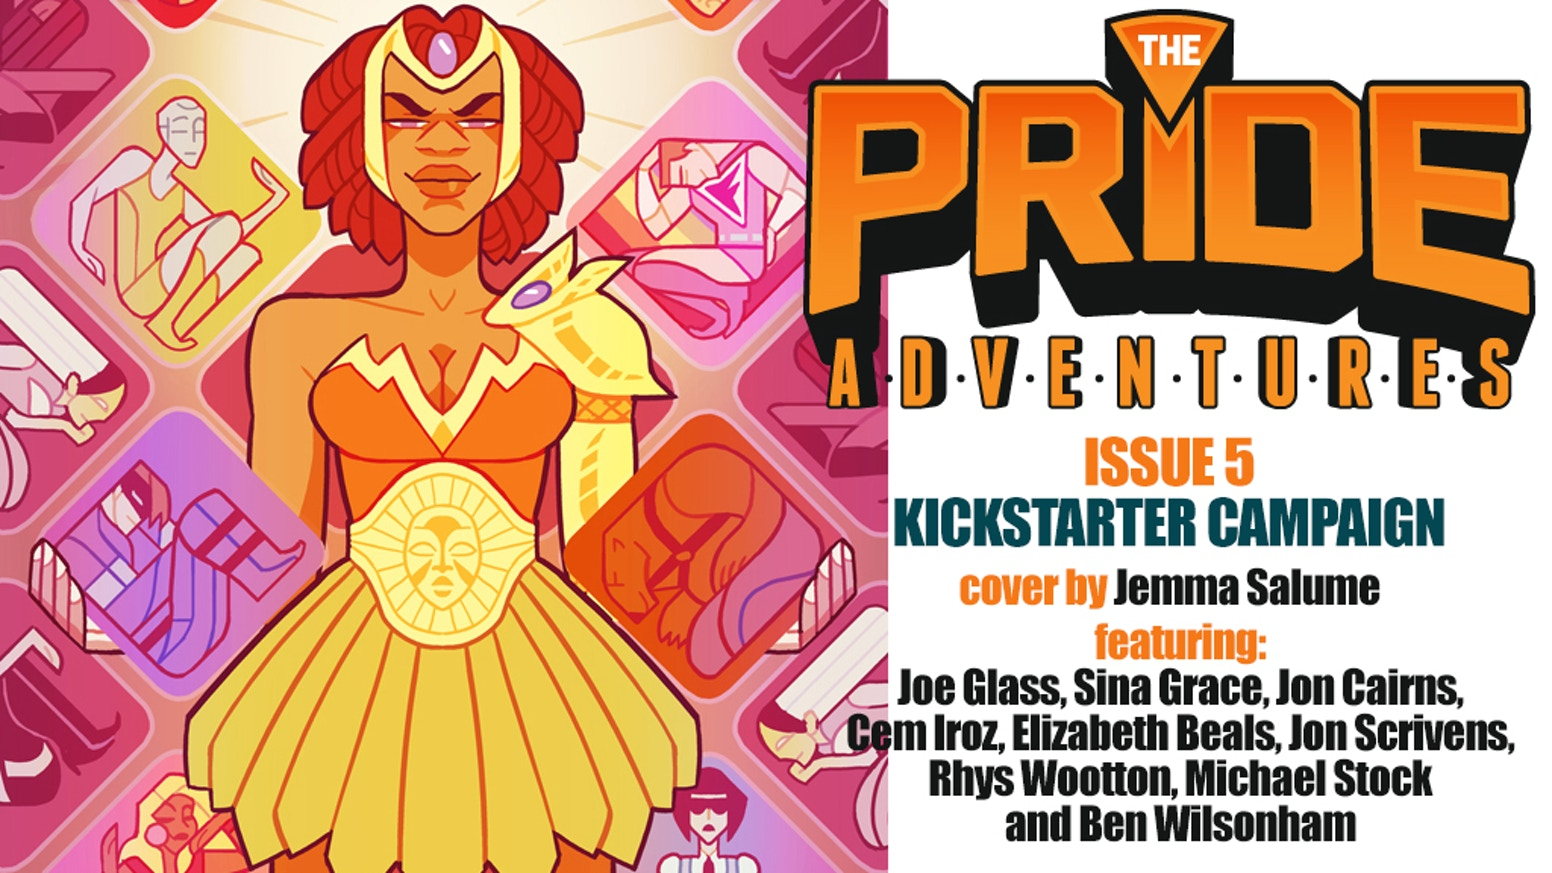 The new issue of the LGBTQ superhero anthology series following The Pride through new adventures in the fight for equality and justice for all!